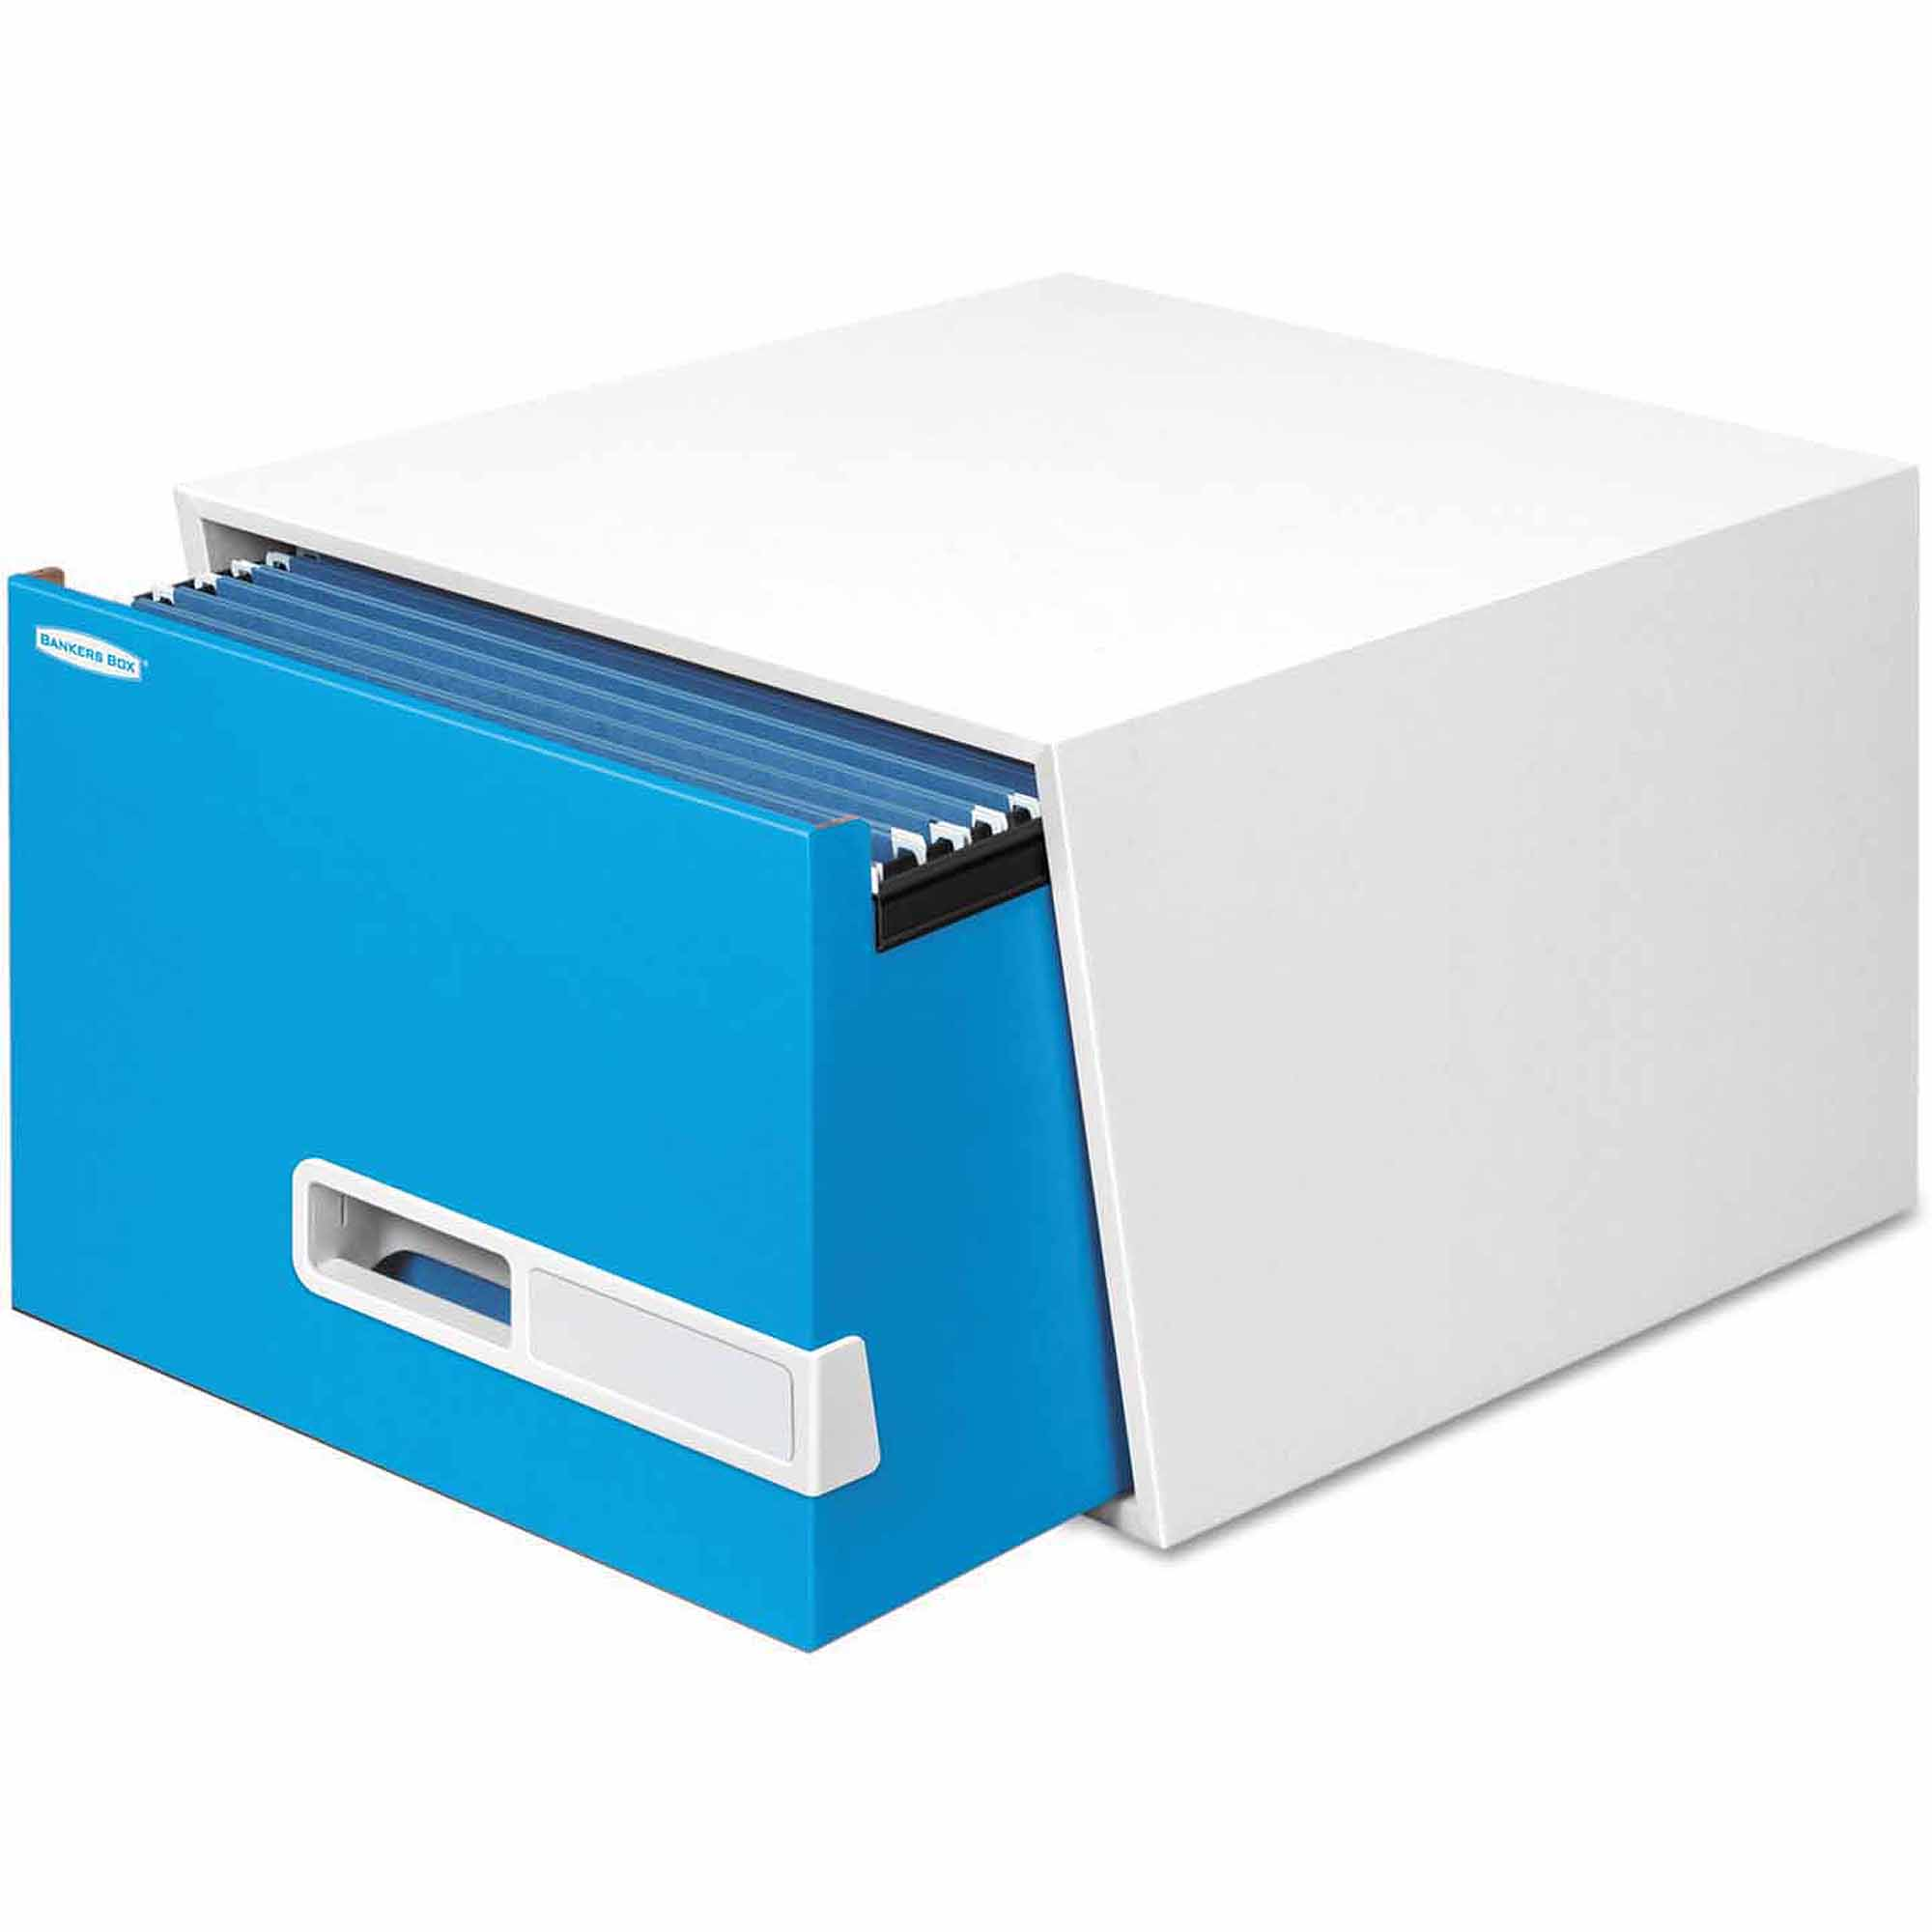 """Bankers Box Stor/Drawer Premier Extra Space Savings Storage Drawers, 24"""" Legal, Blue, 5-Count"""